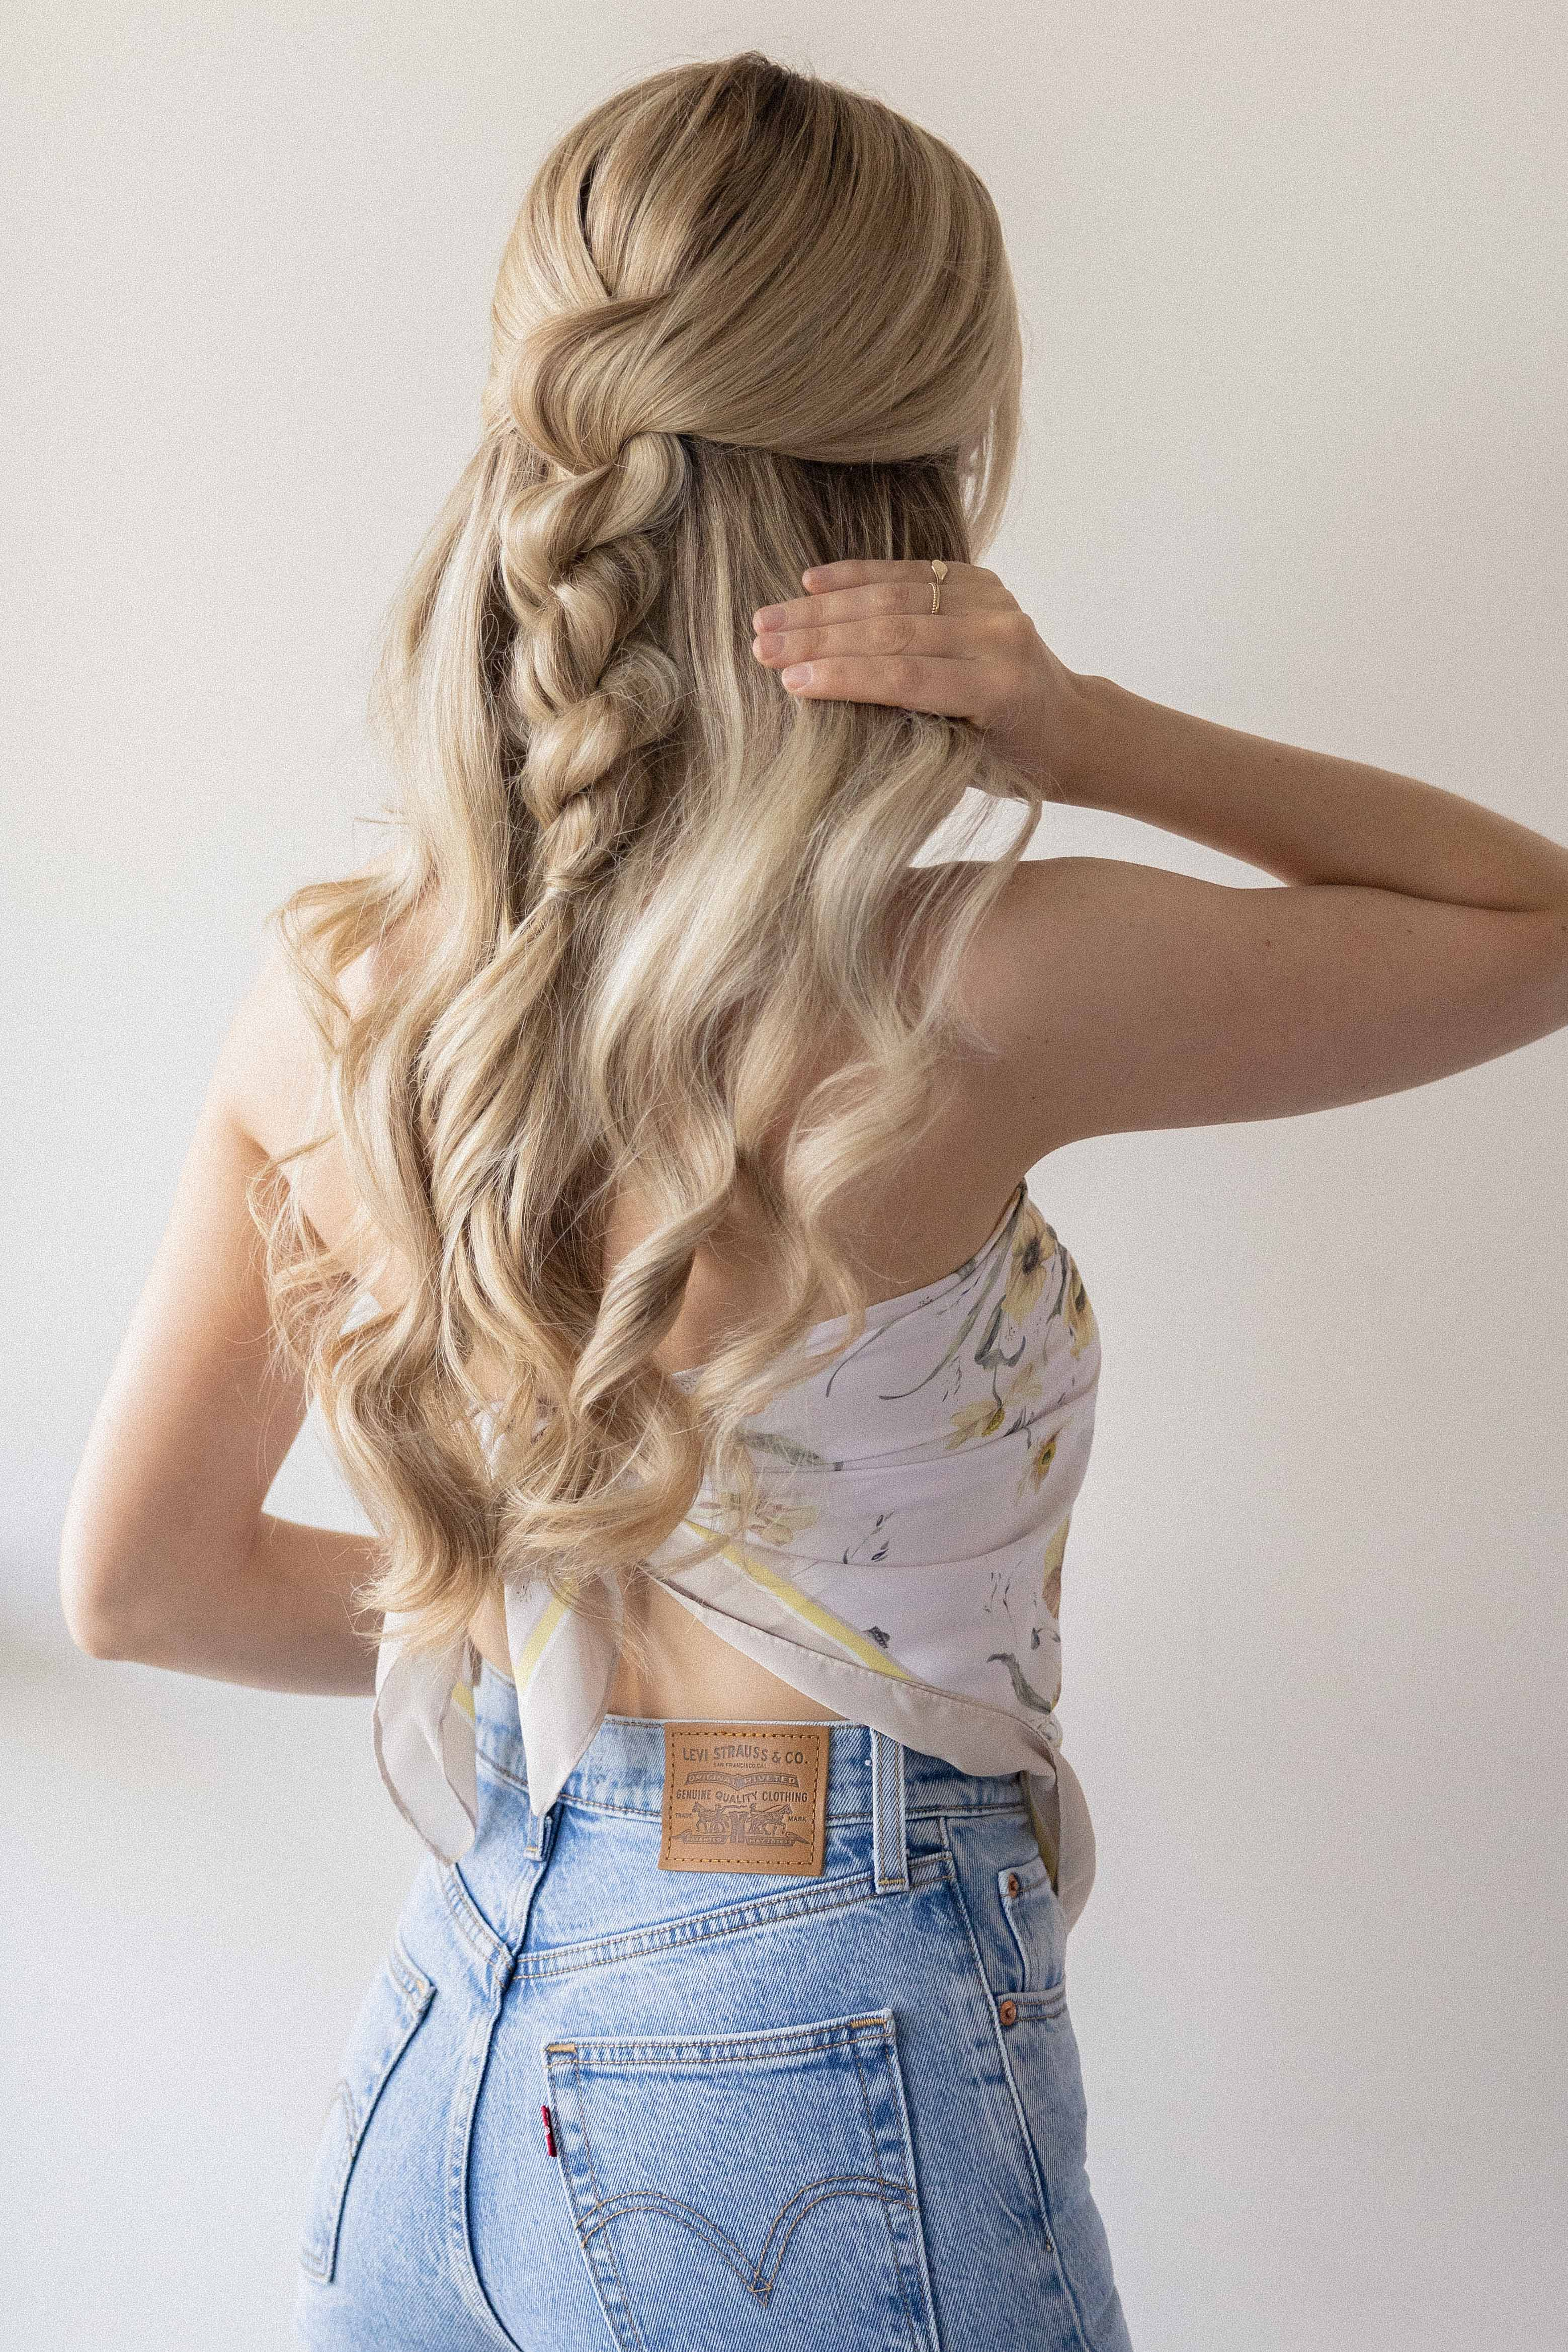 3 EASY HAIRSTYLES TO TRY THIS SUMMER | Hair Tutorial